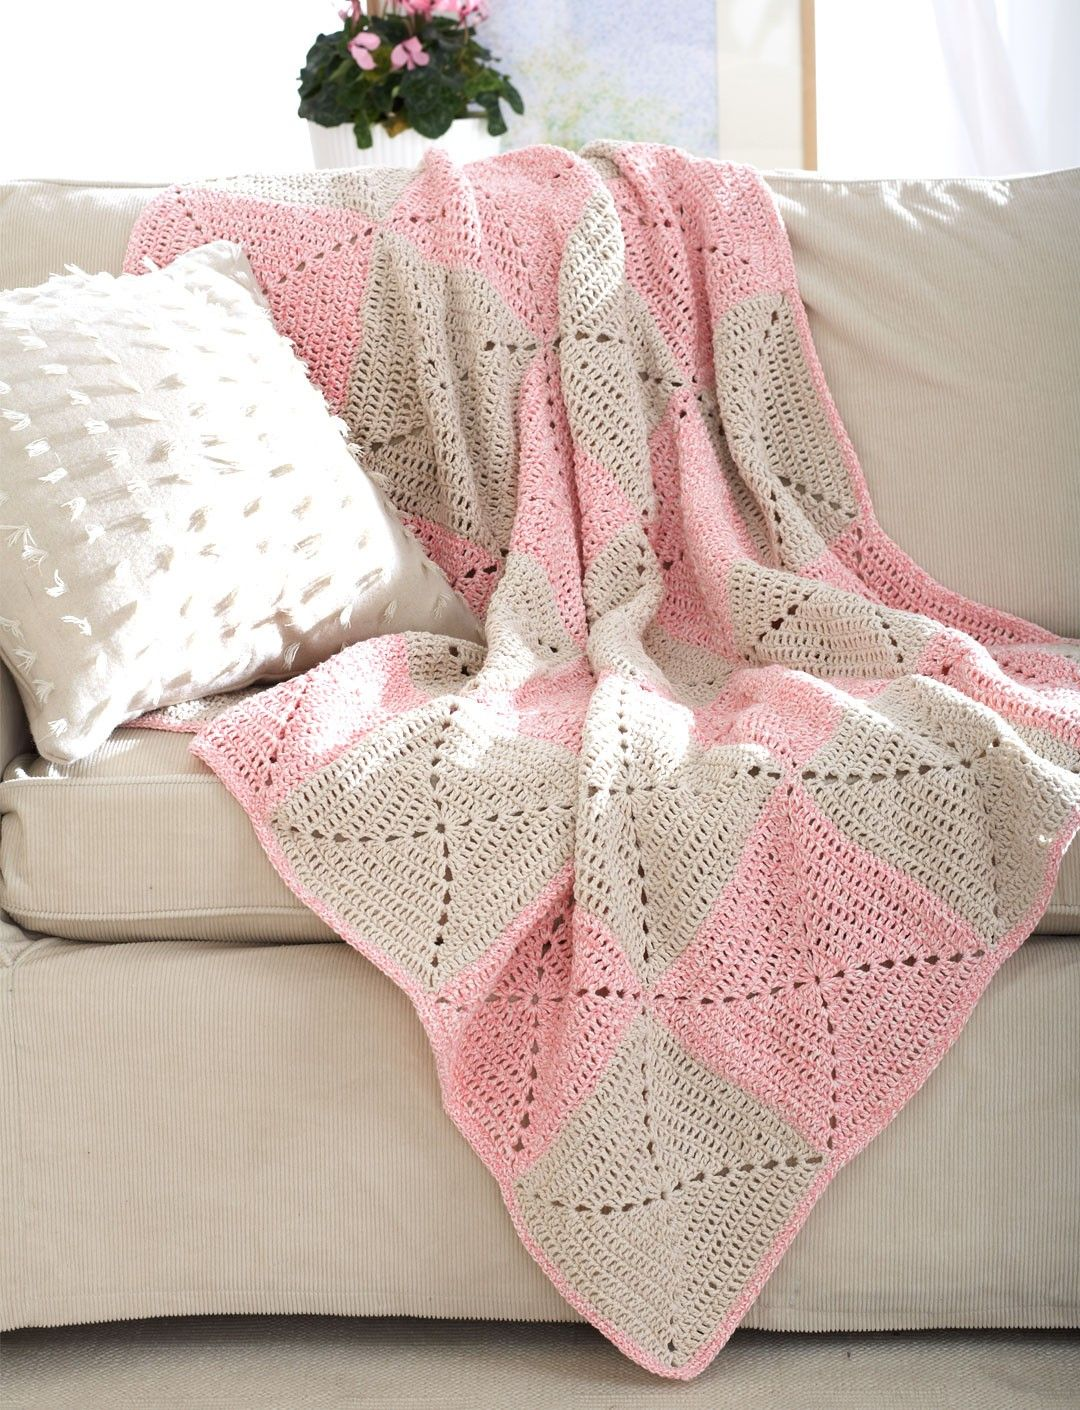 Yarnspirations.com - Bernat Blanket - Patterns | Yarnspirations ...